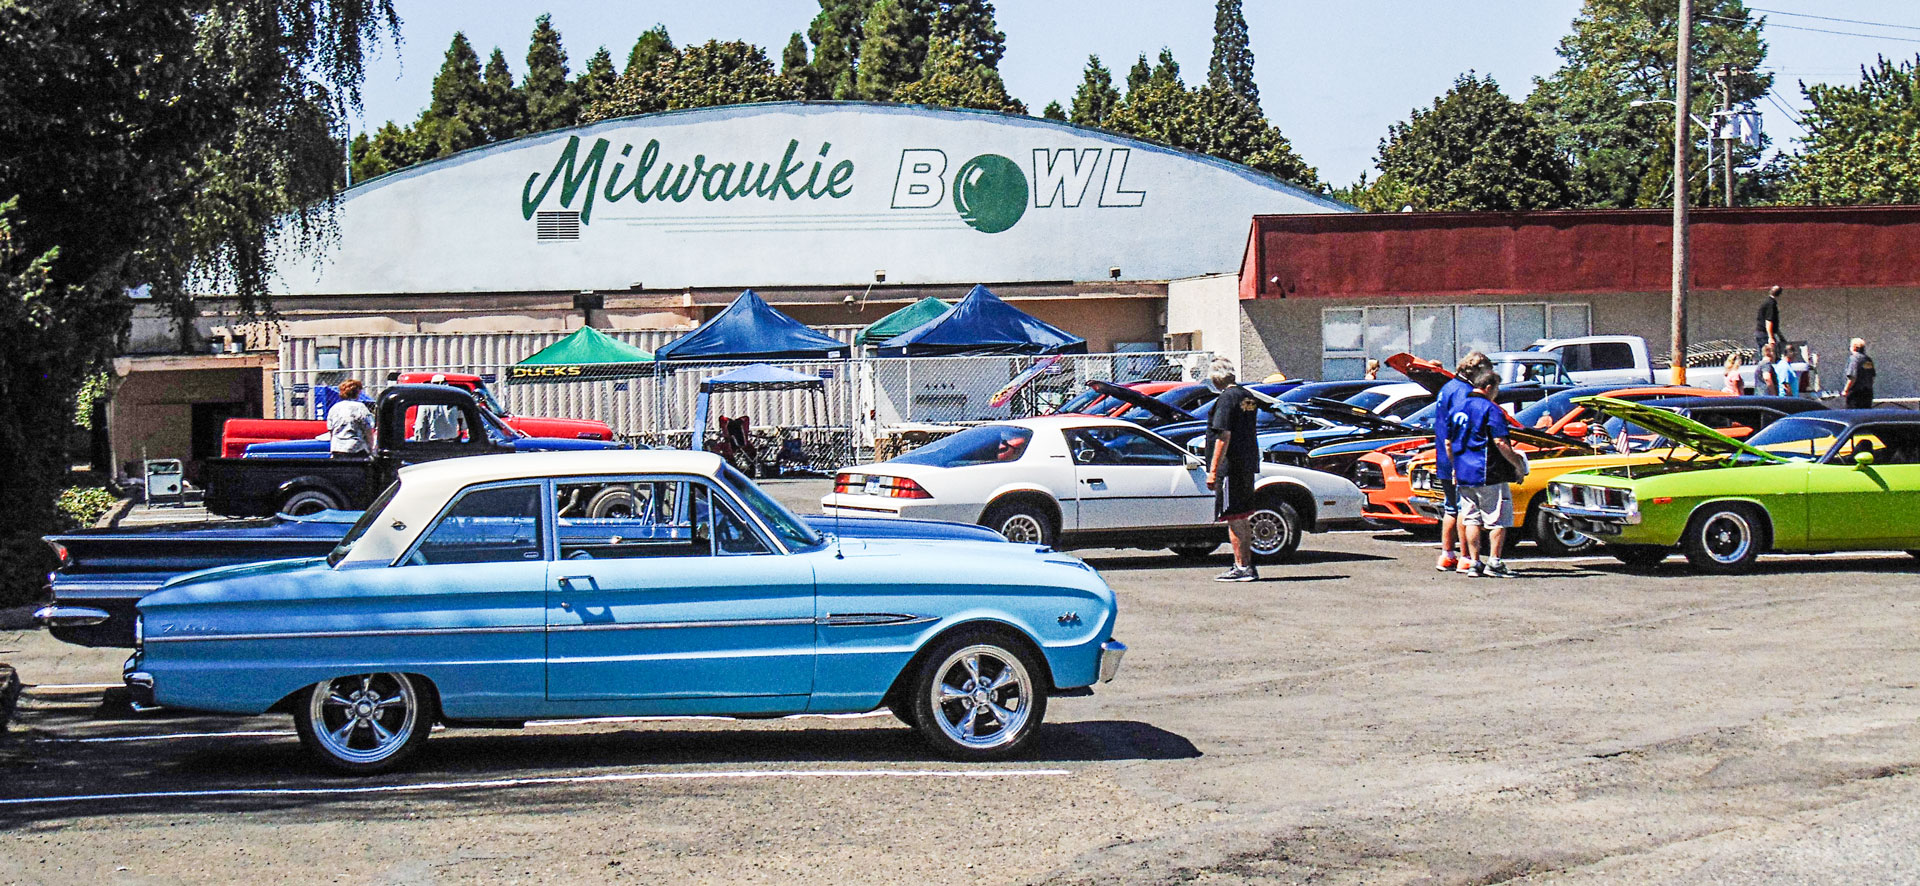 milwaukie-bowl-milwaukie-cruise-in